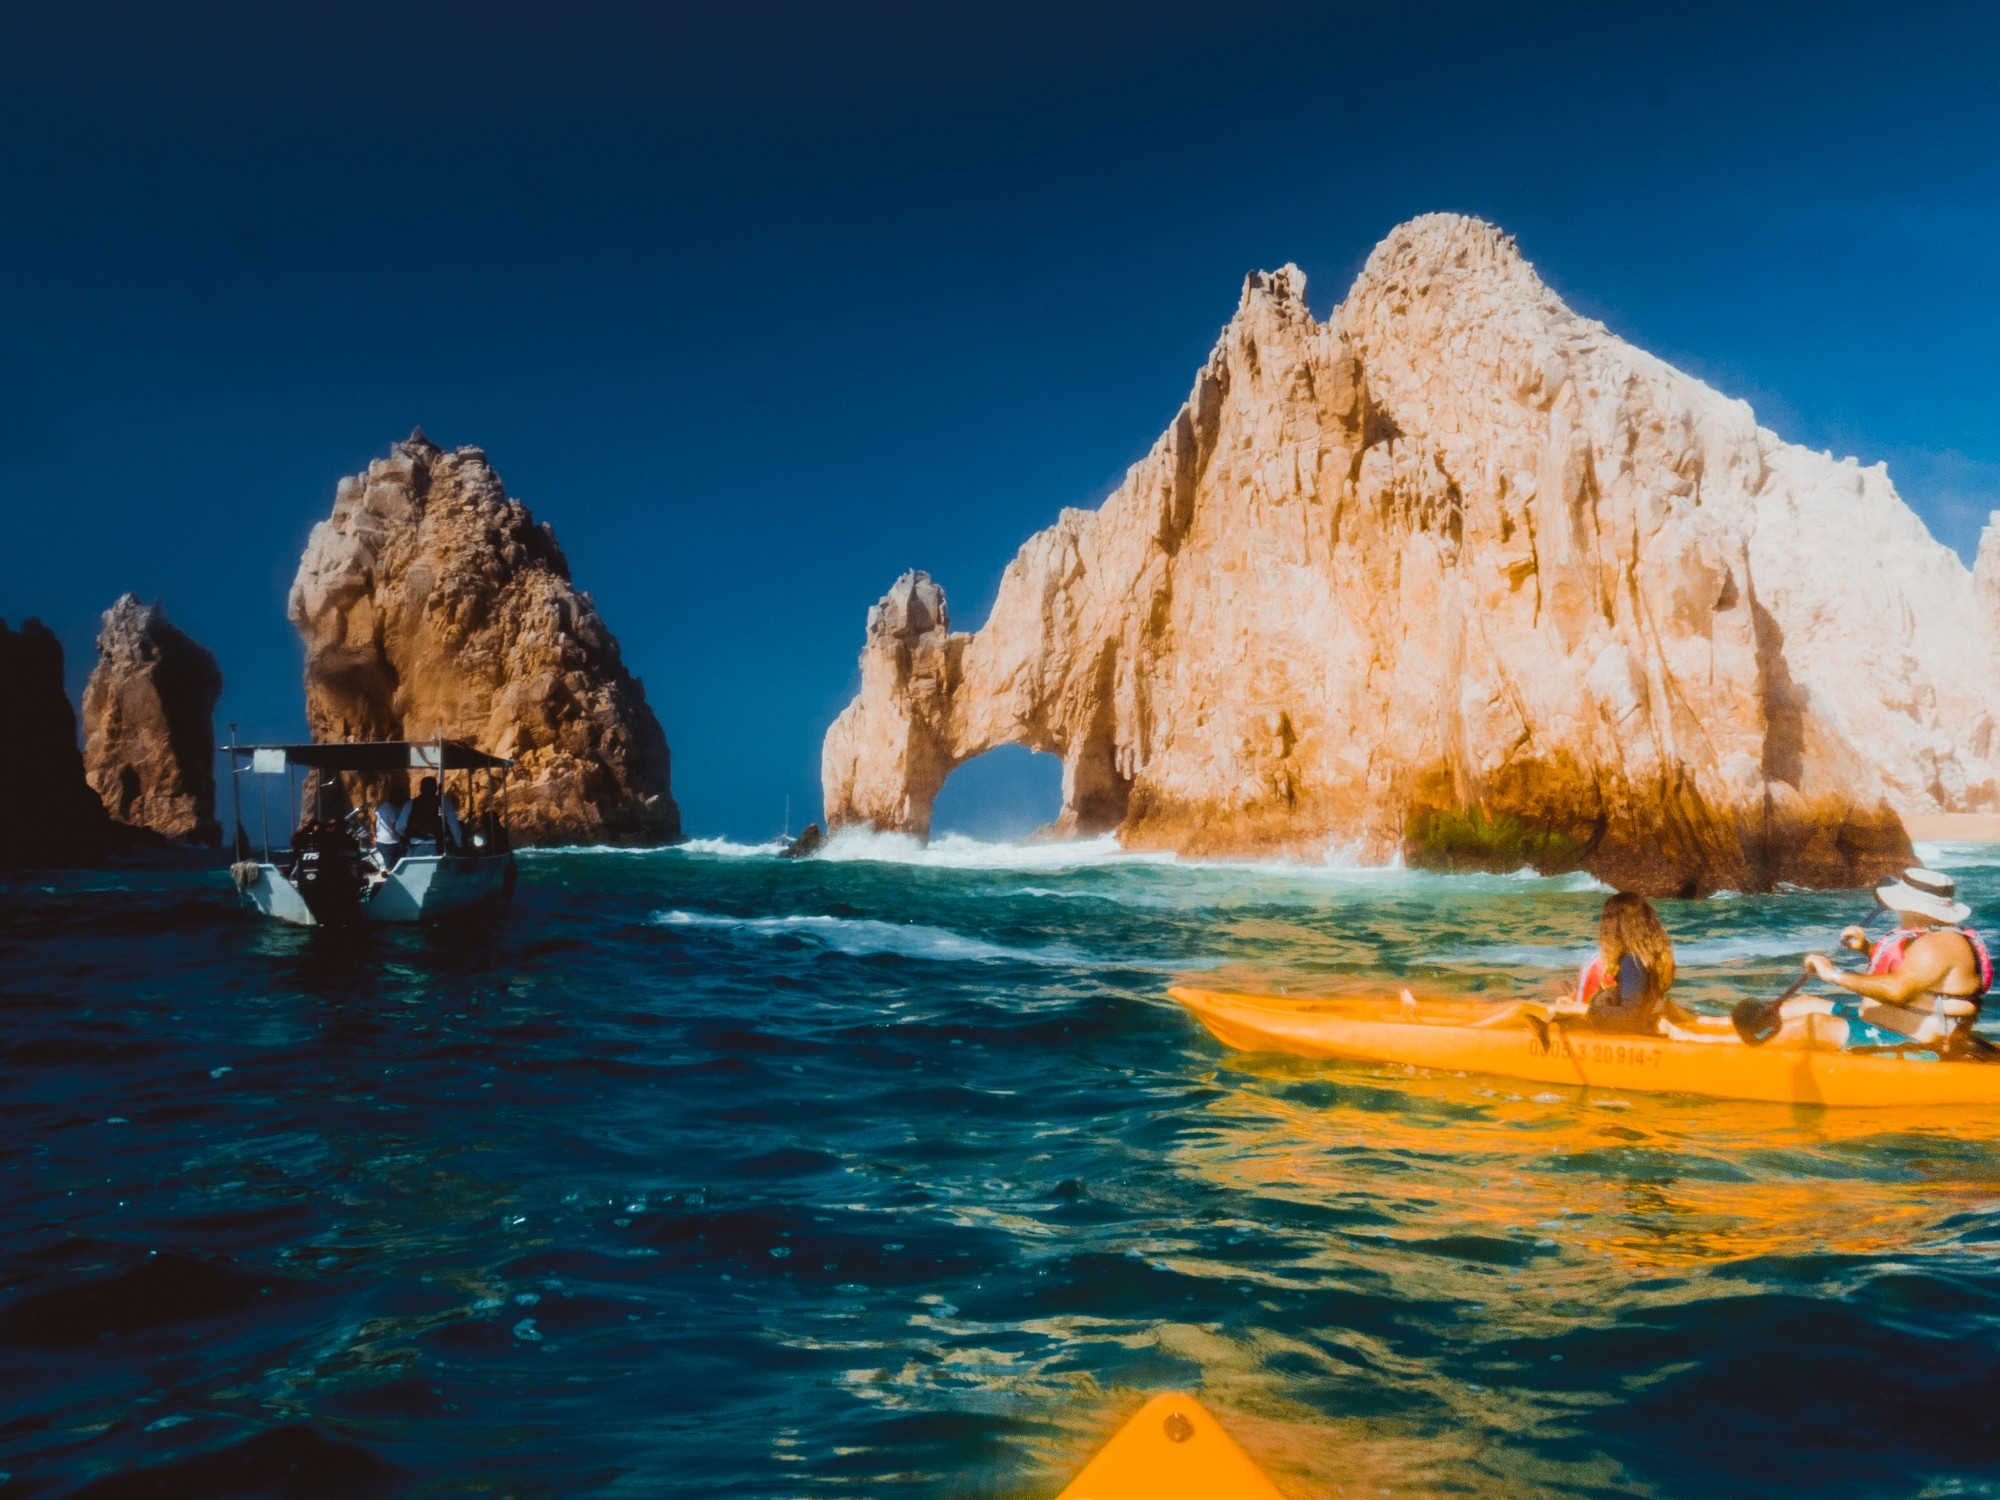 Kayaking tour with hightide in Cabos San Lucas